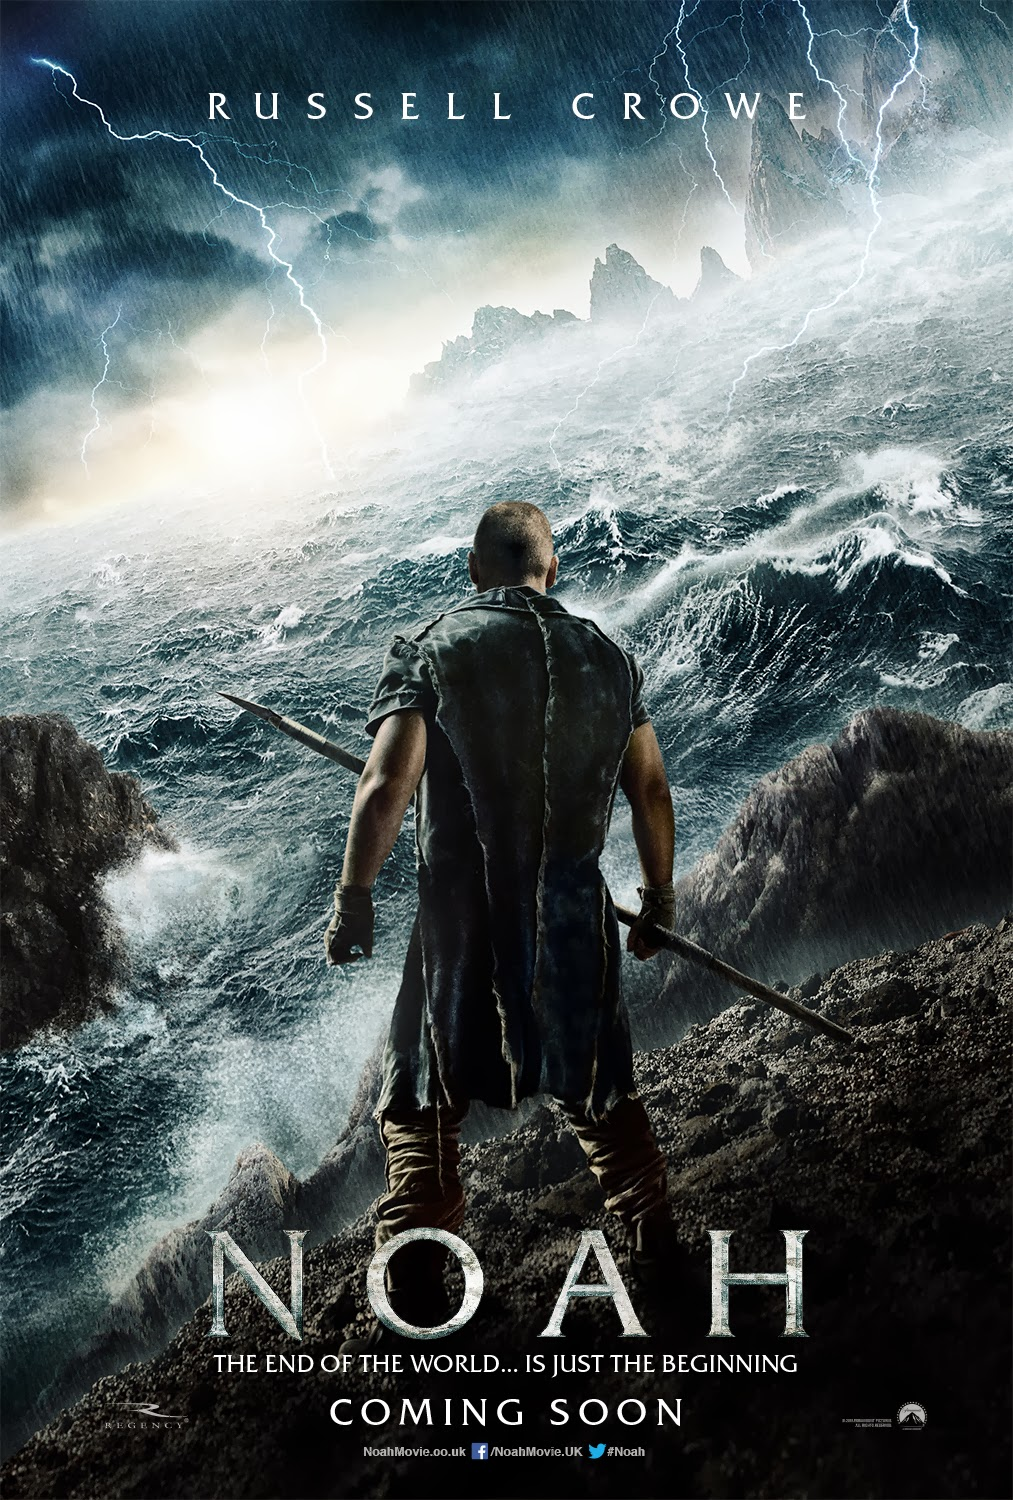 Malaysia bans Noah Film as 'Un-Islamic'